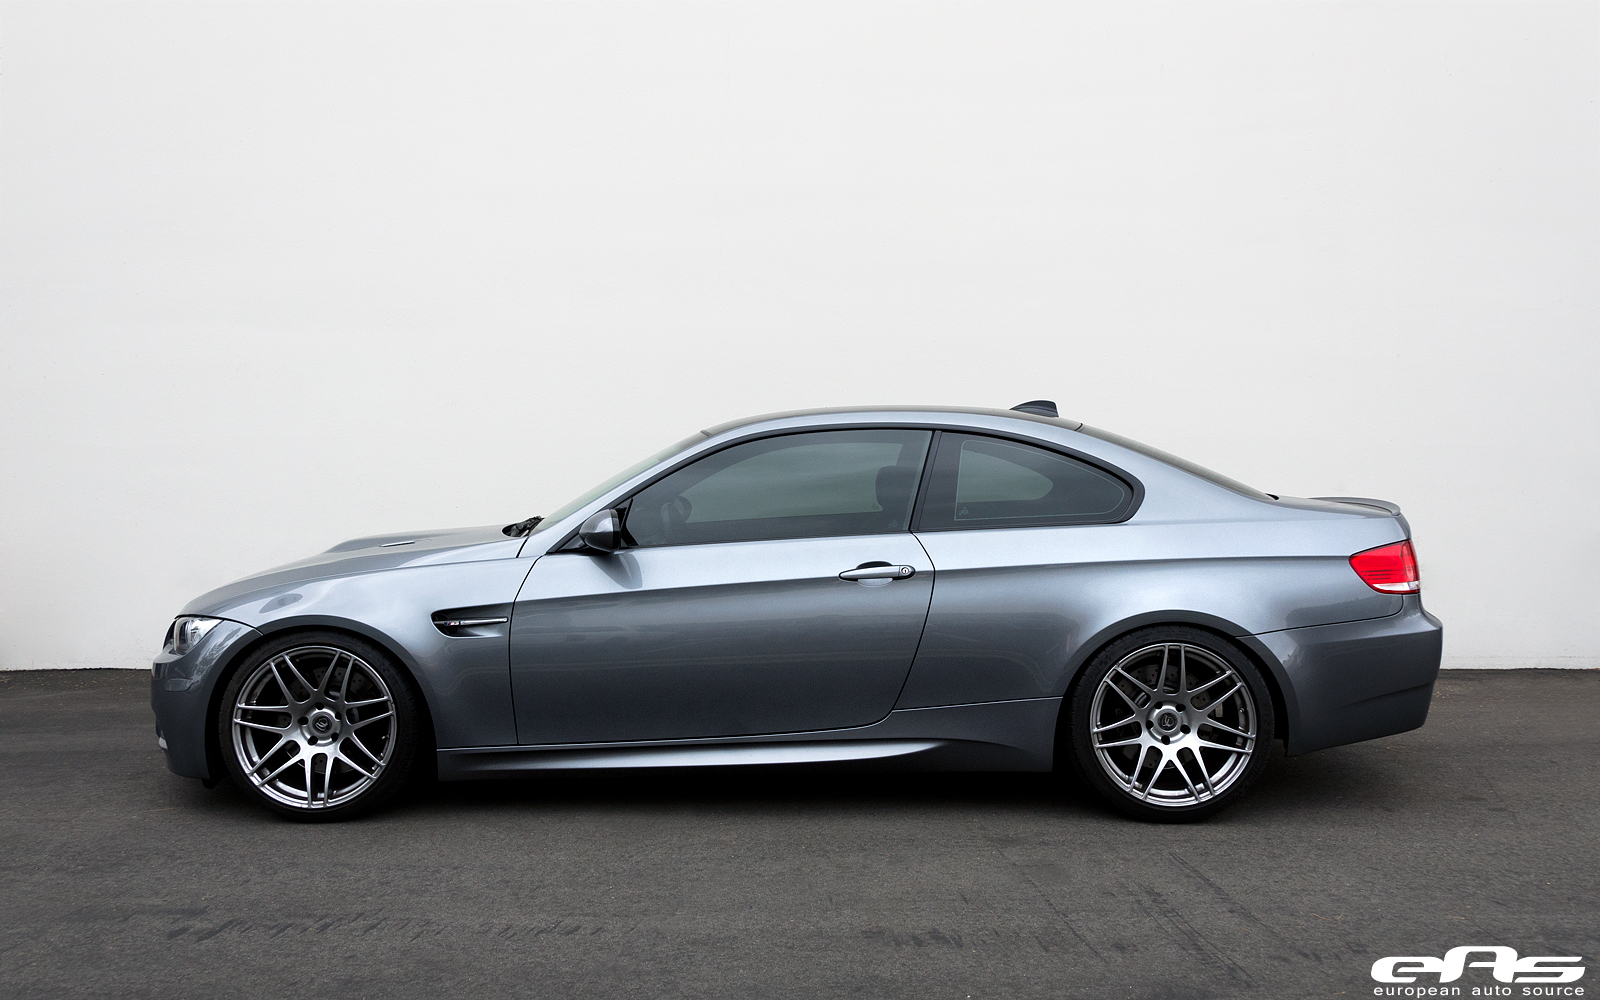 space grey bmw e92 m3 climbs on kw suspension at eas autoevolution. Black Bedroom Furniture Sets. Home Design Ideas